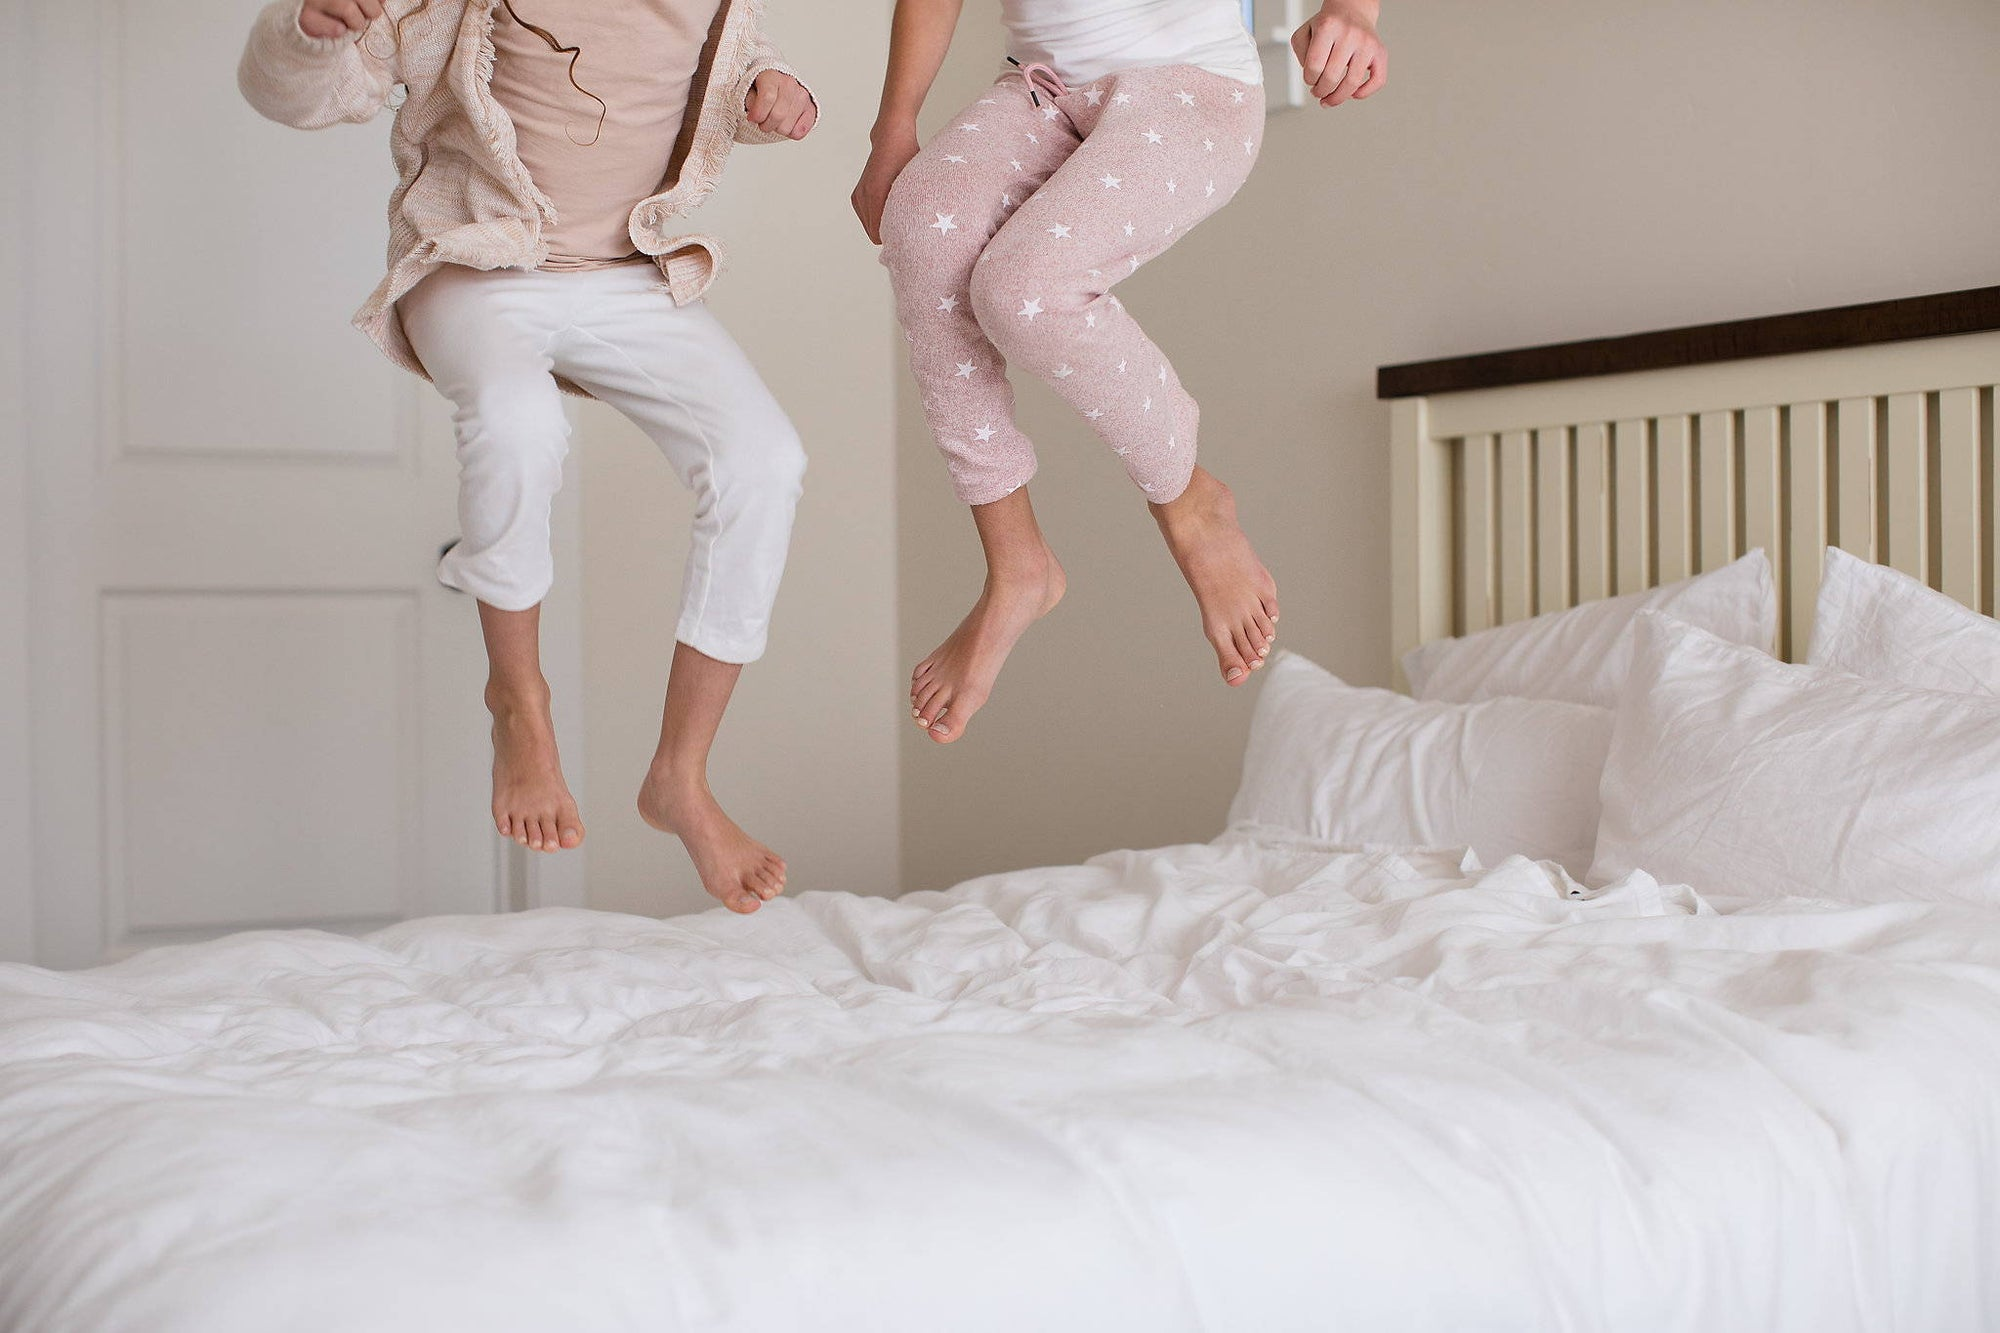 Sleep Tight: Tips for helping kids sleep